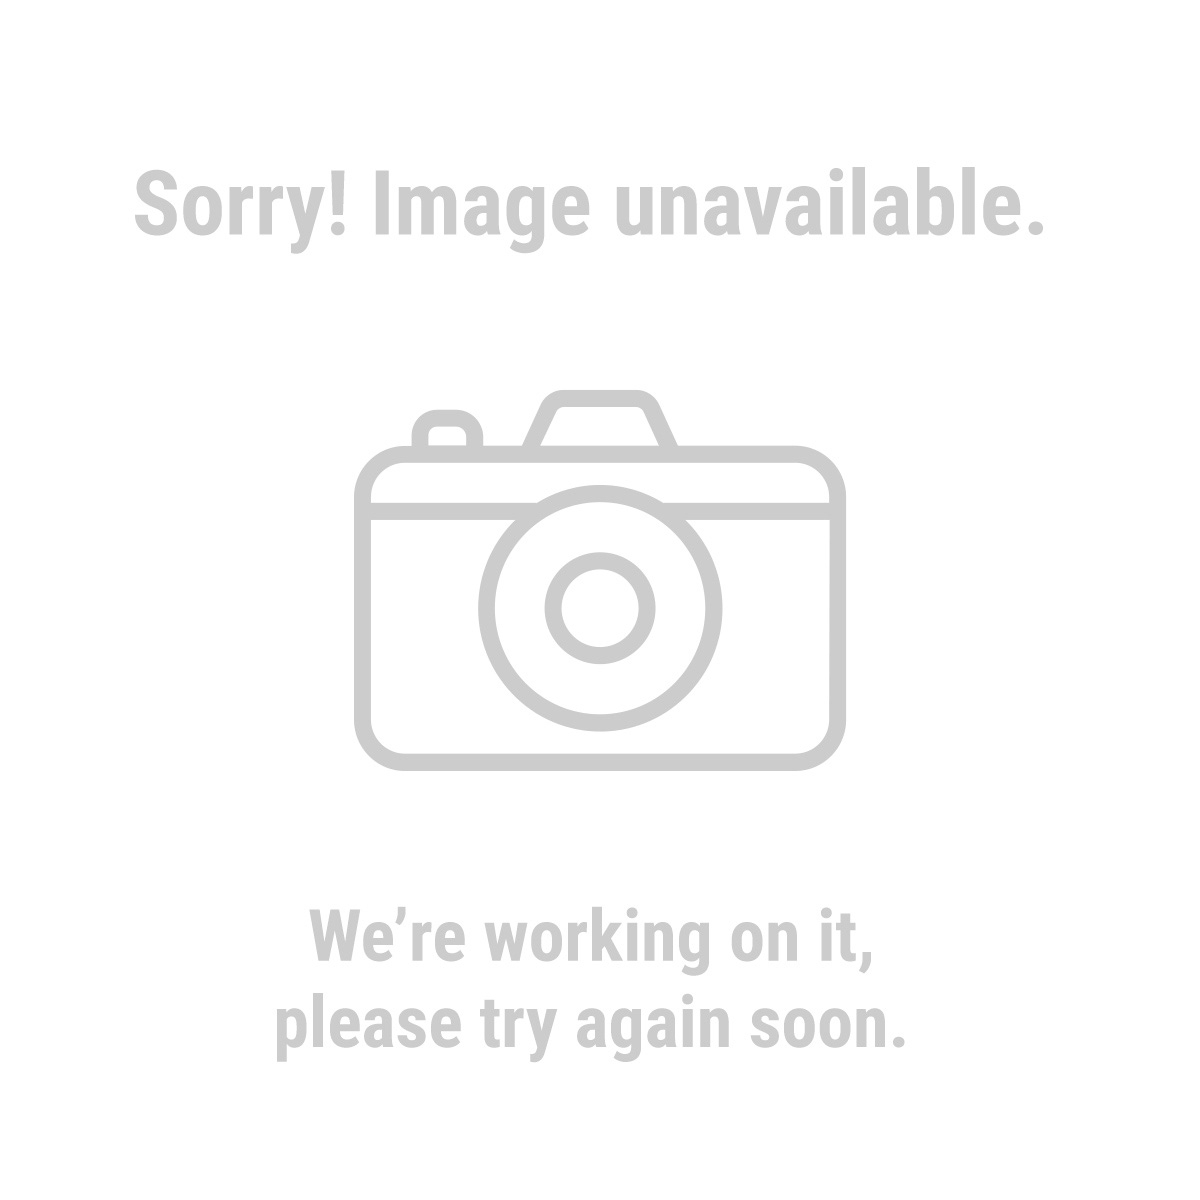 "Haul-Master 36612 2"" x 20 Ft. Heavy Duty Tow Strap"